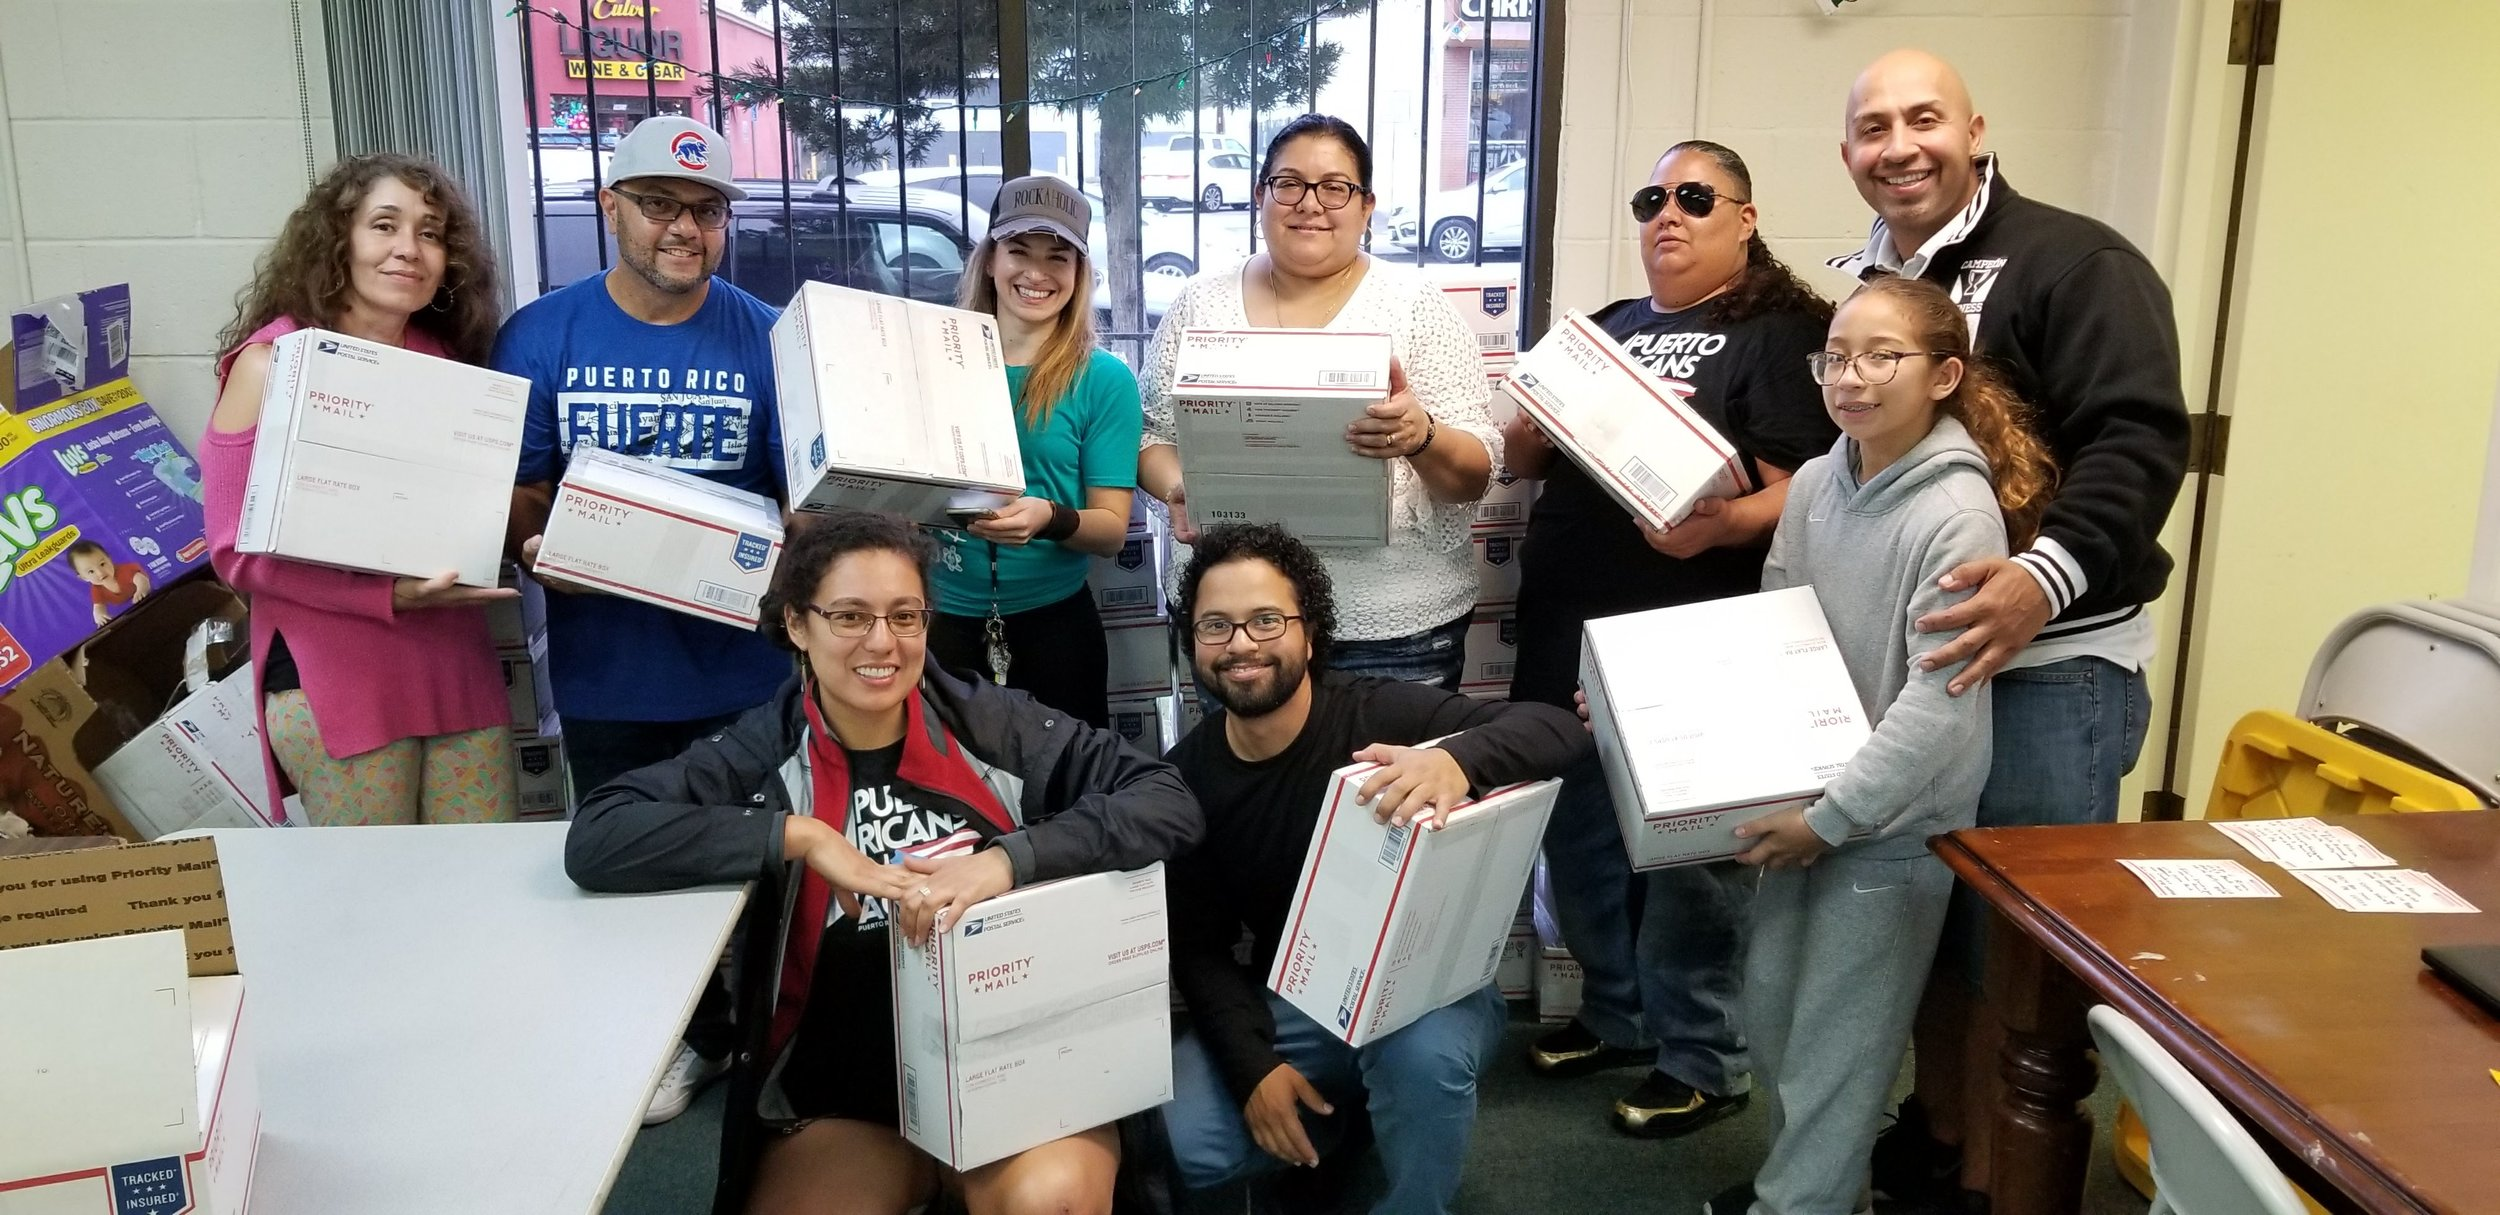 Care Package Drive - In Jan of 2018, PRiA called upon the community to help put packages together for Three Kings Day. Over 60 boxes were packed and filled with supplies that were later sent to the people in Puerto Rico.